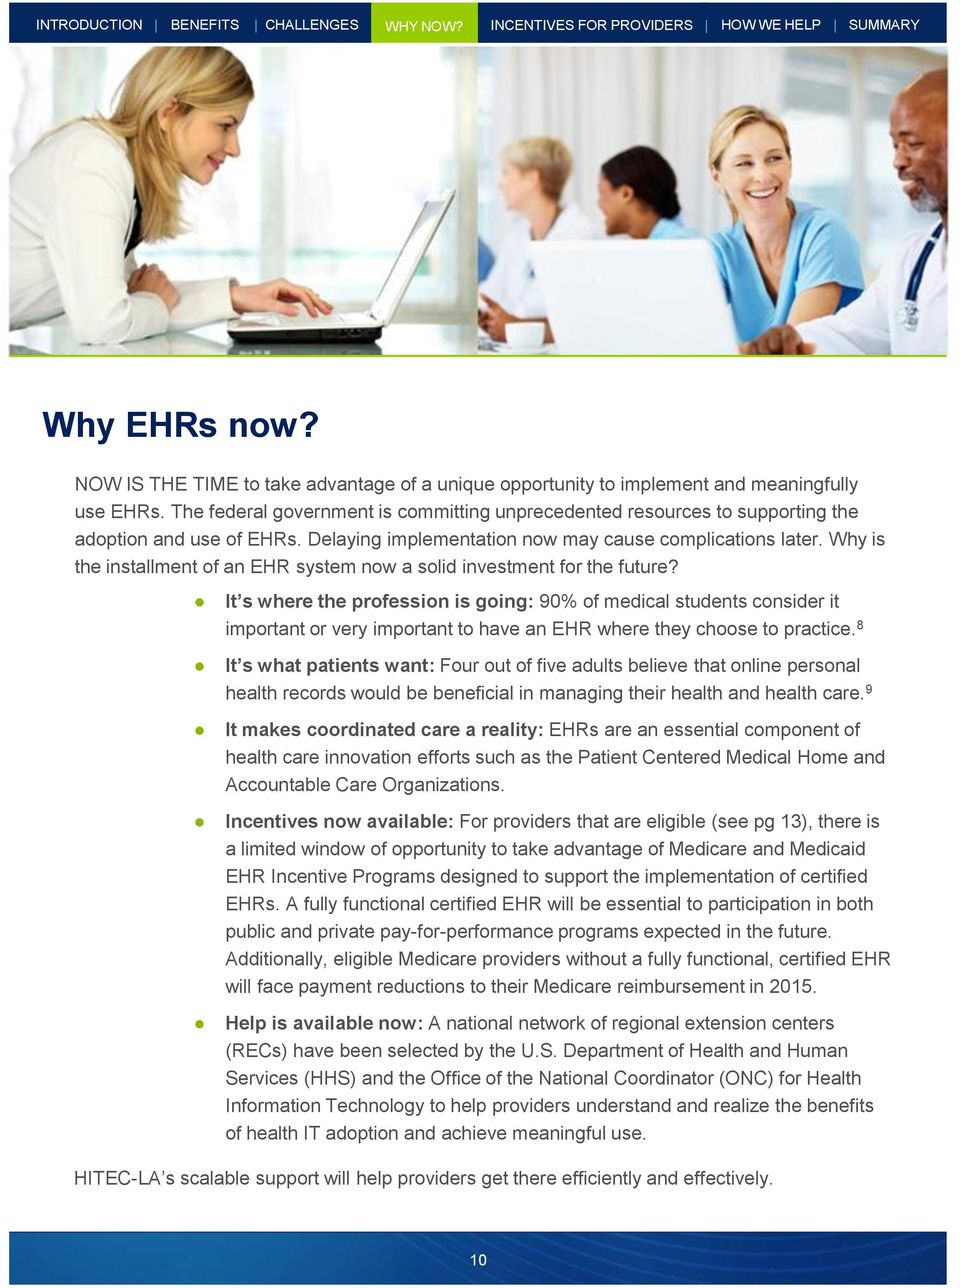 Why is the installment of an EHR system now a solid investment for the future?